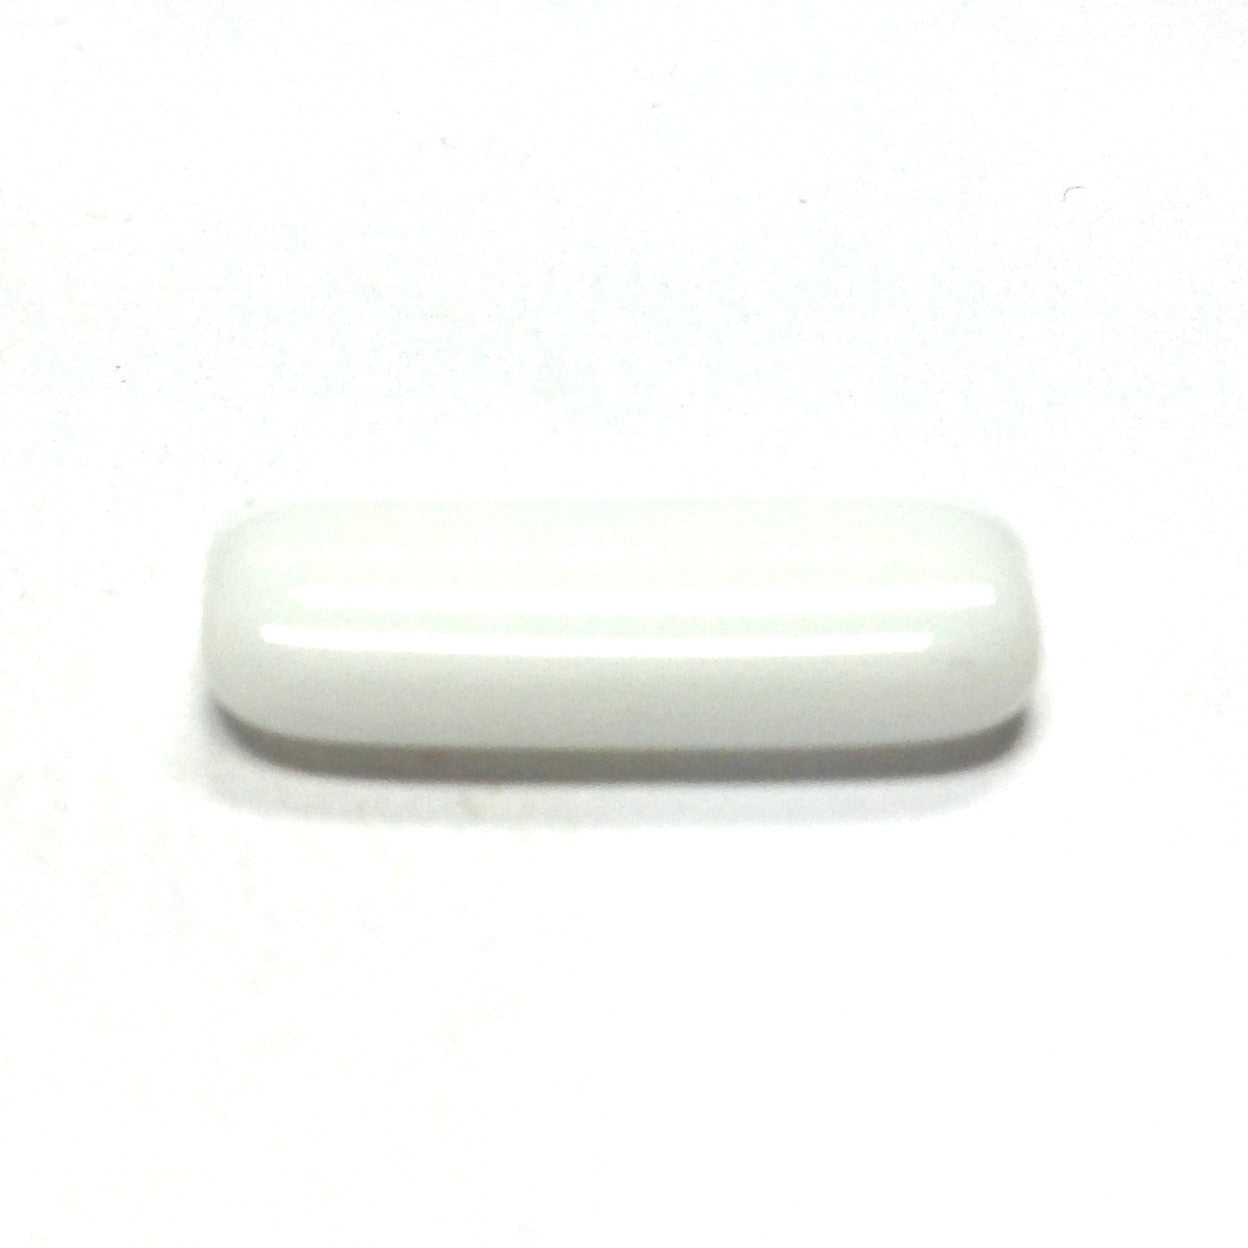 18X7MM White Glass Rectangle Bead (72 pieces)